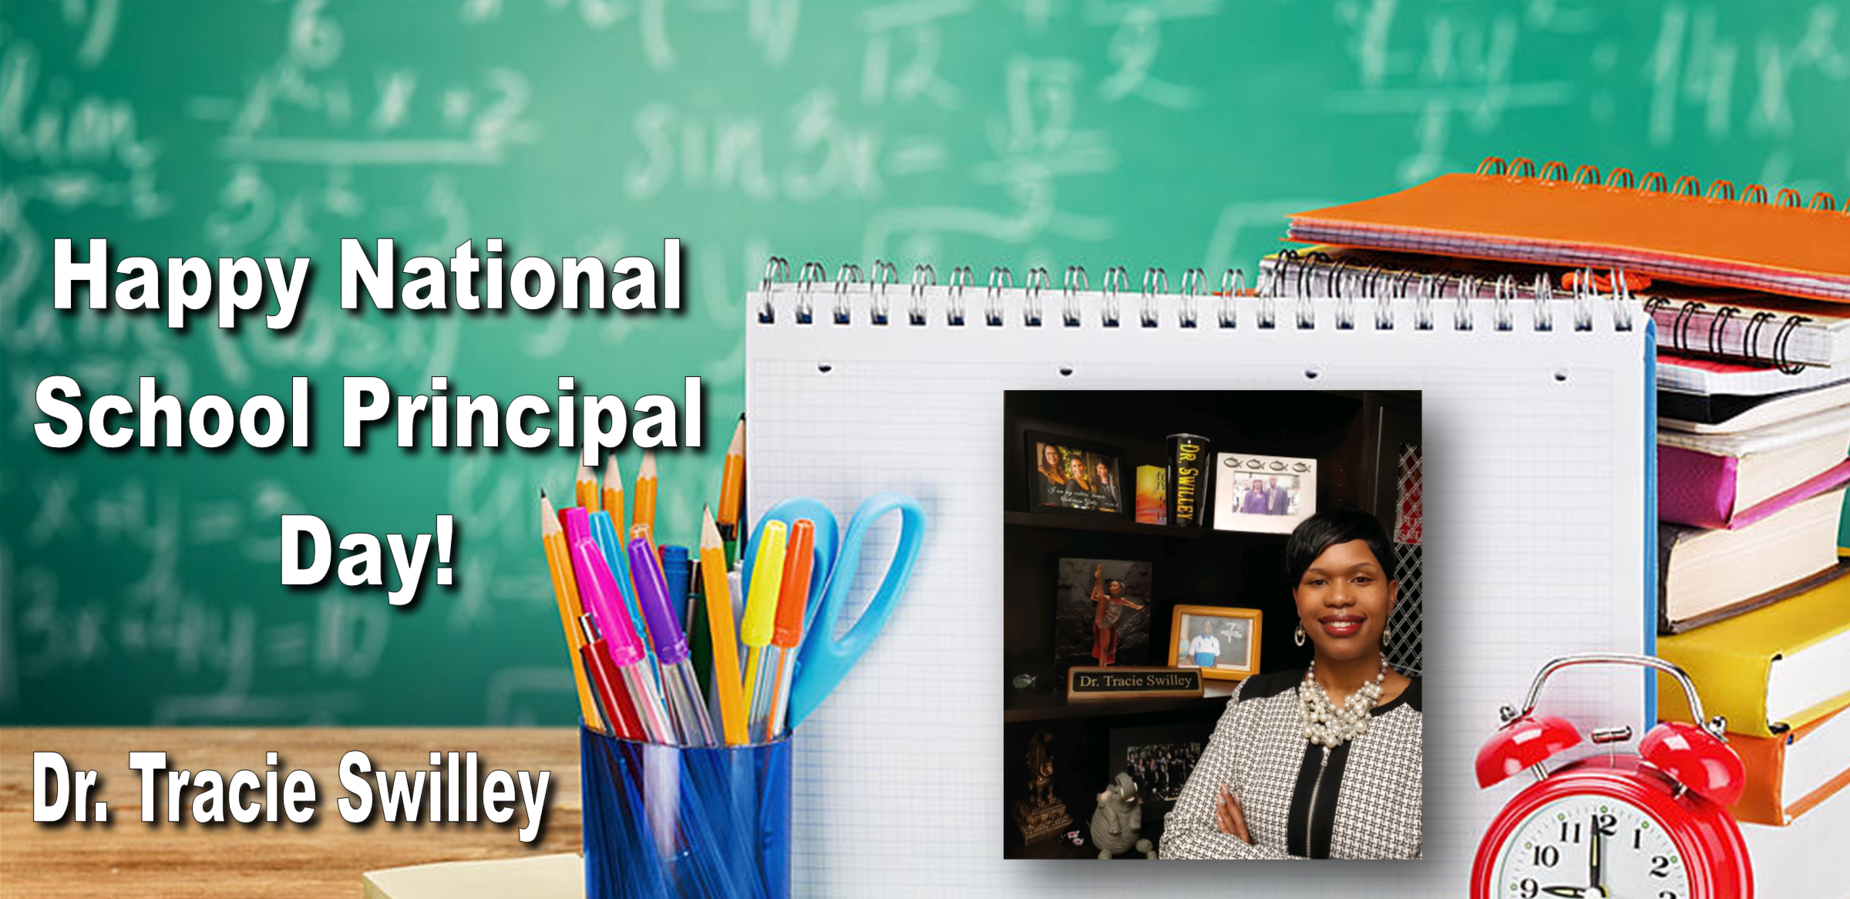 Happy National School Principal Day! Dr. Tracie Swilley